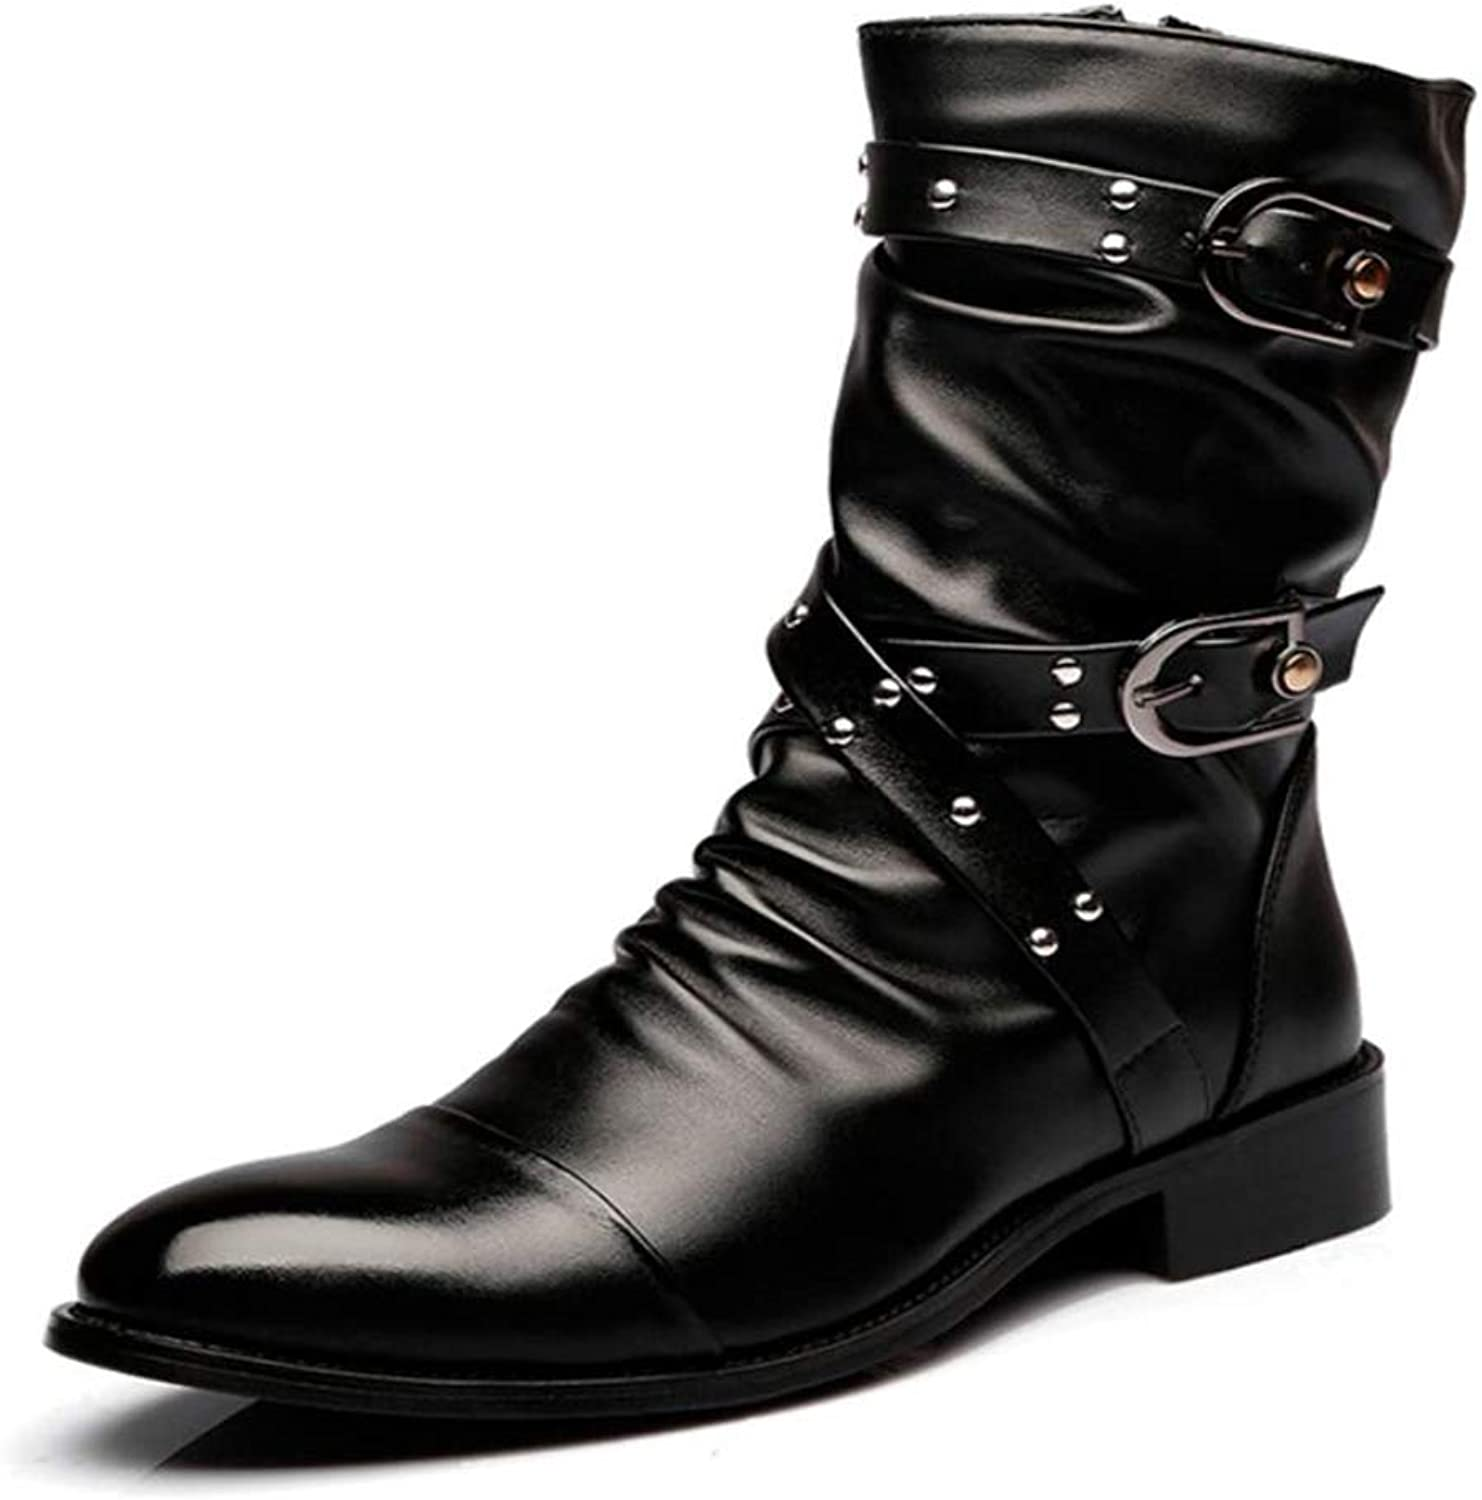 Men's Boots Motorcycle Boots Autumn and Winter Fashion High Boots Martin Boots Rivet Boots Cotton shoes Men's Casual Leather Boots